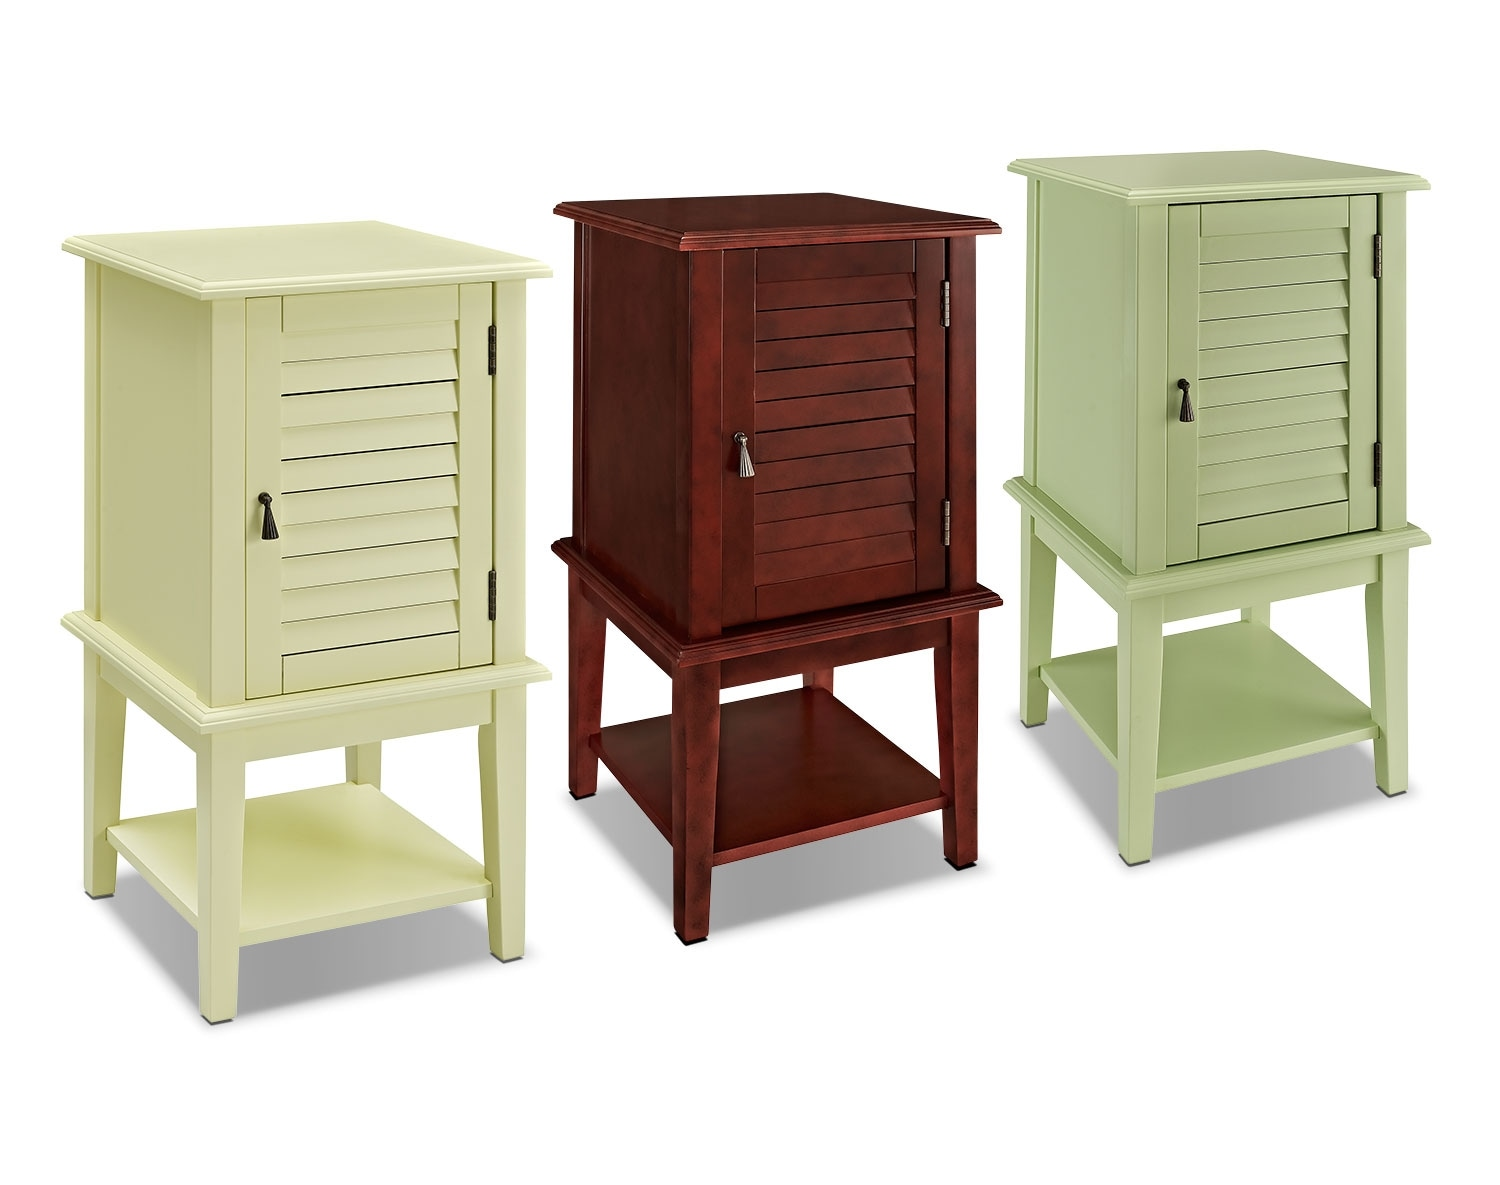 The Tulsa Side Table Collection